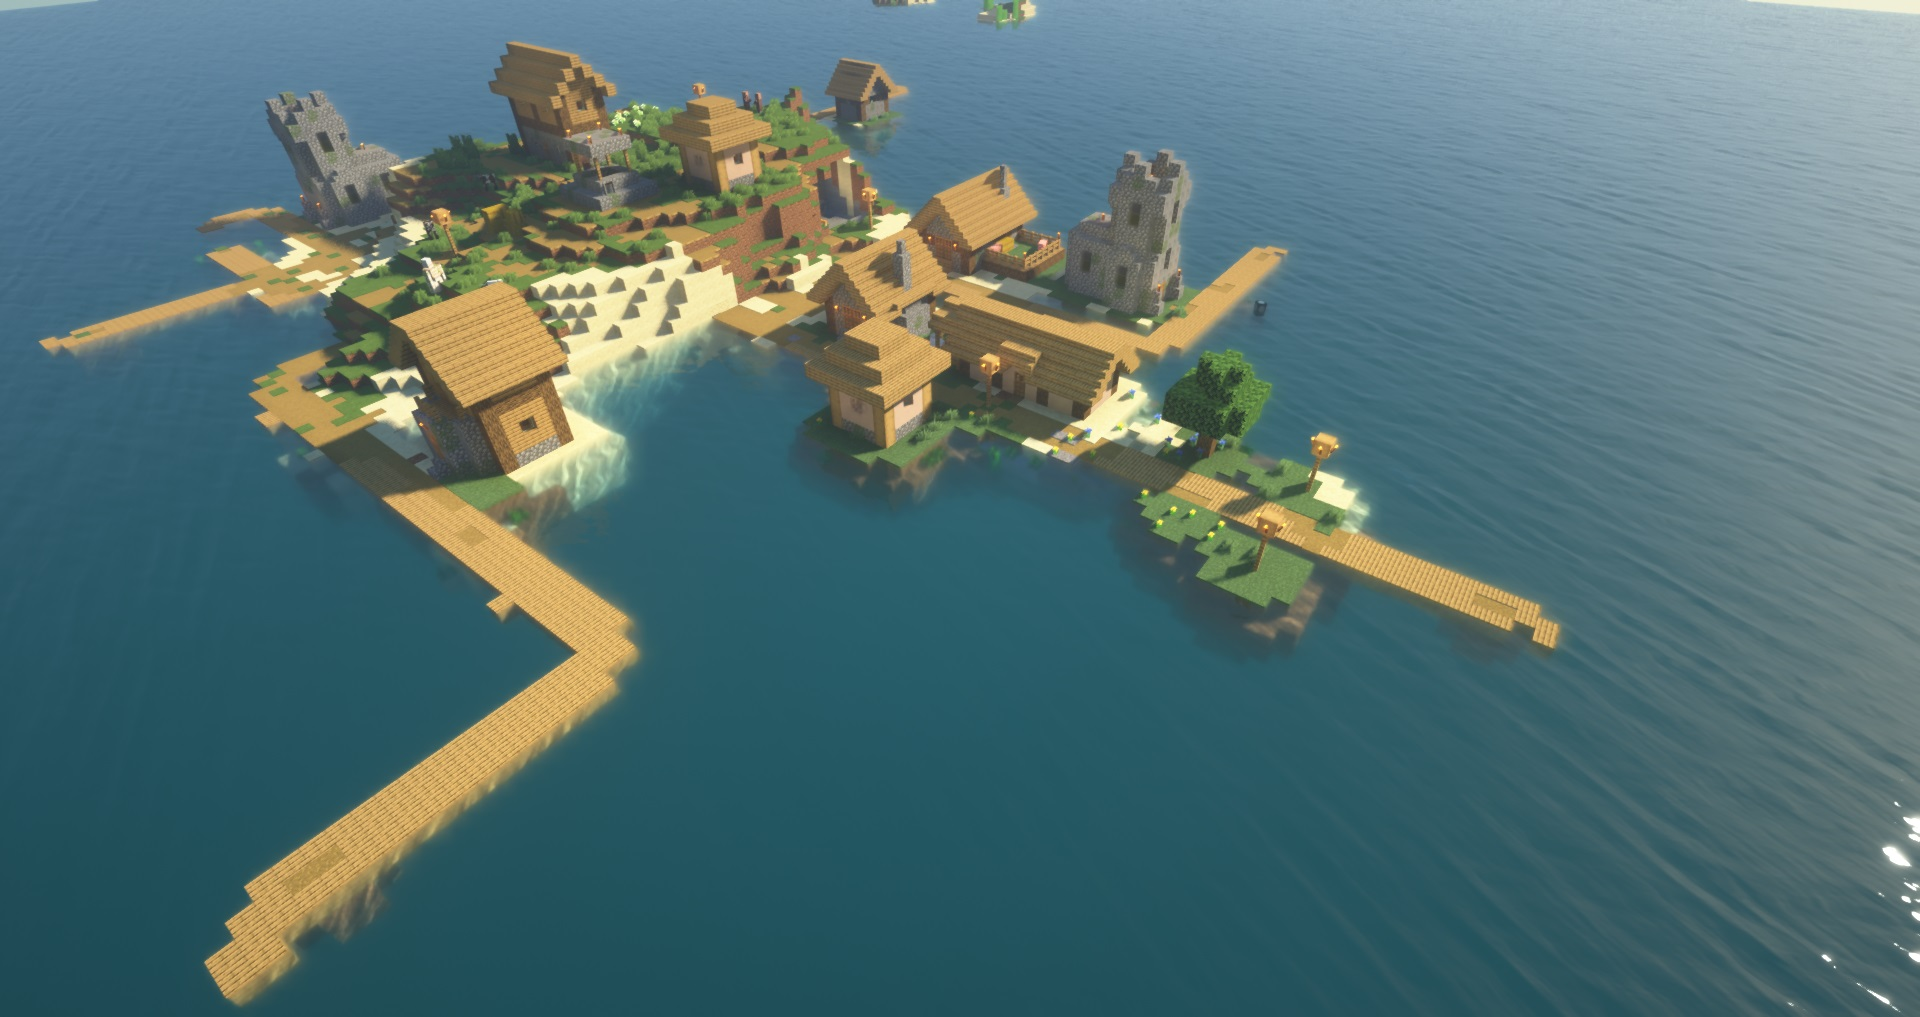 Minecraft village seed: A view from above of an island village with several wooden docks, houses, and watchtowers